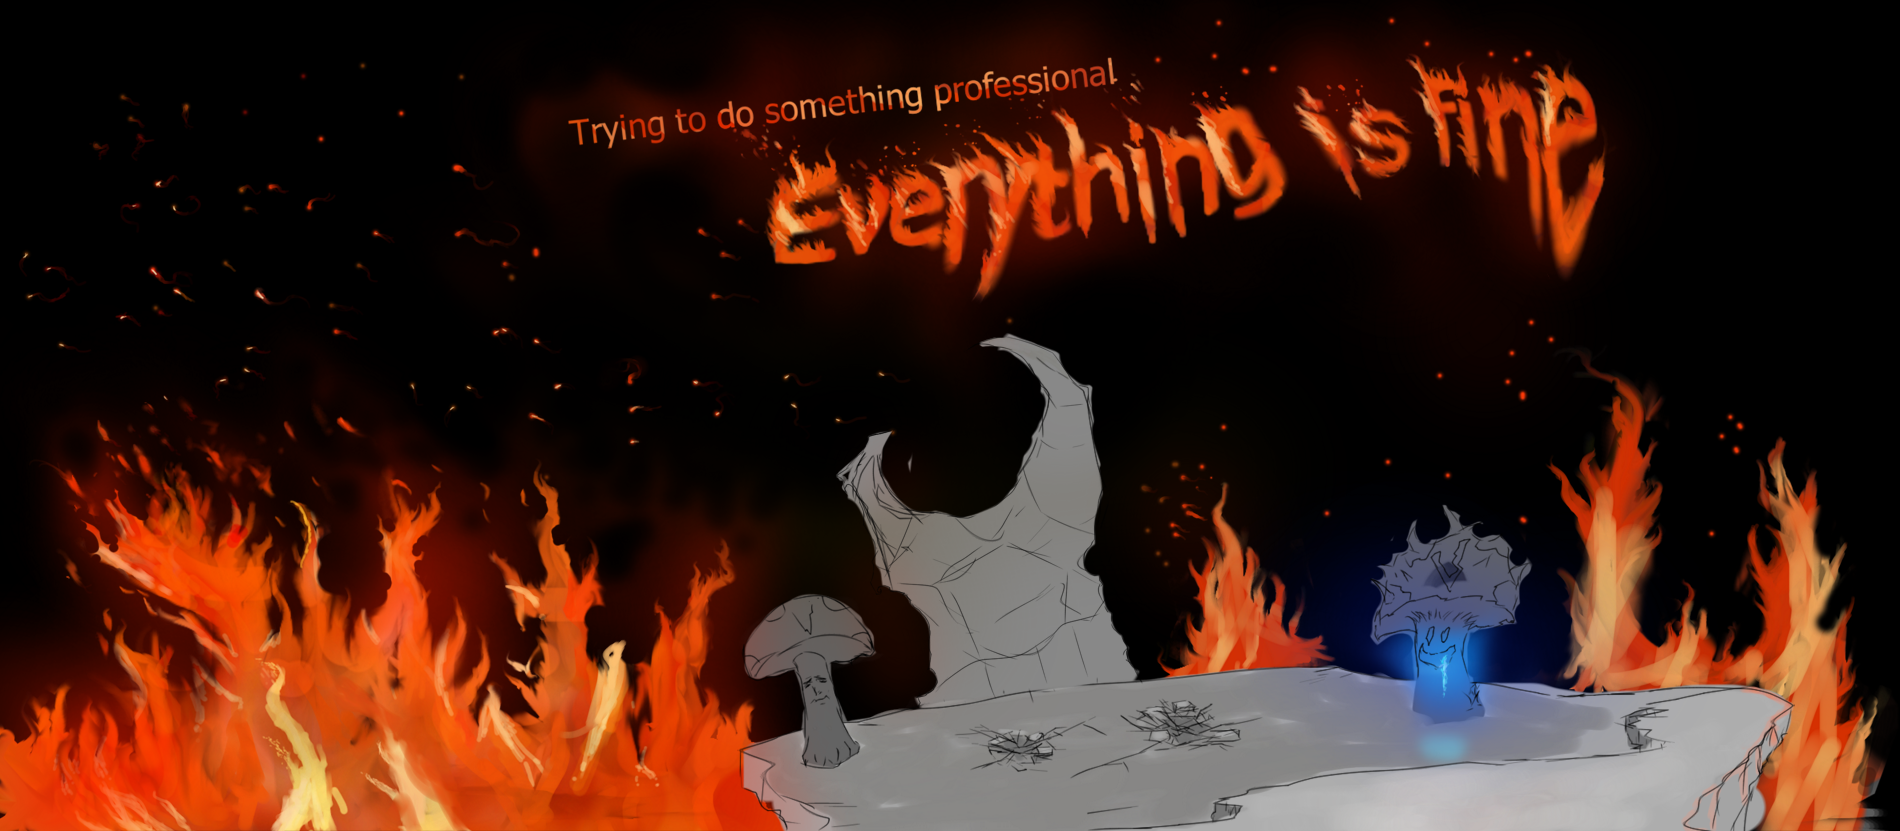 eveything is fine